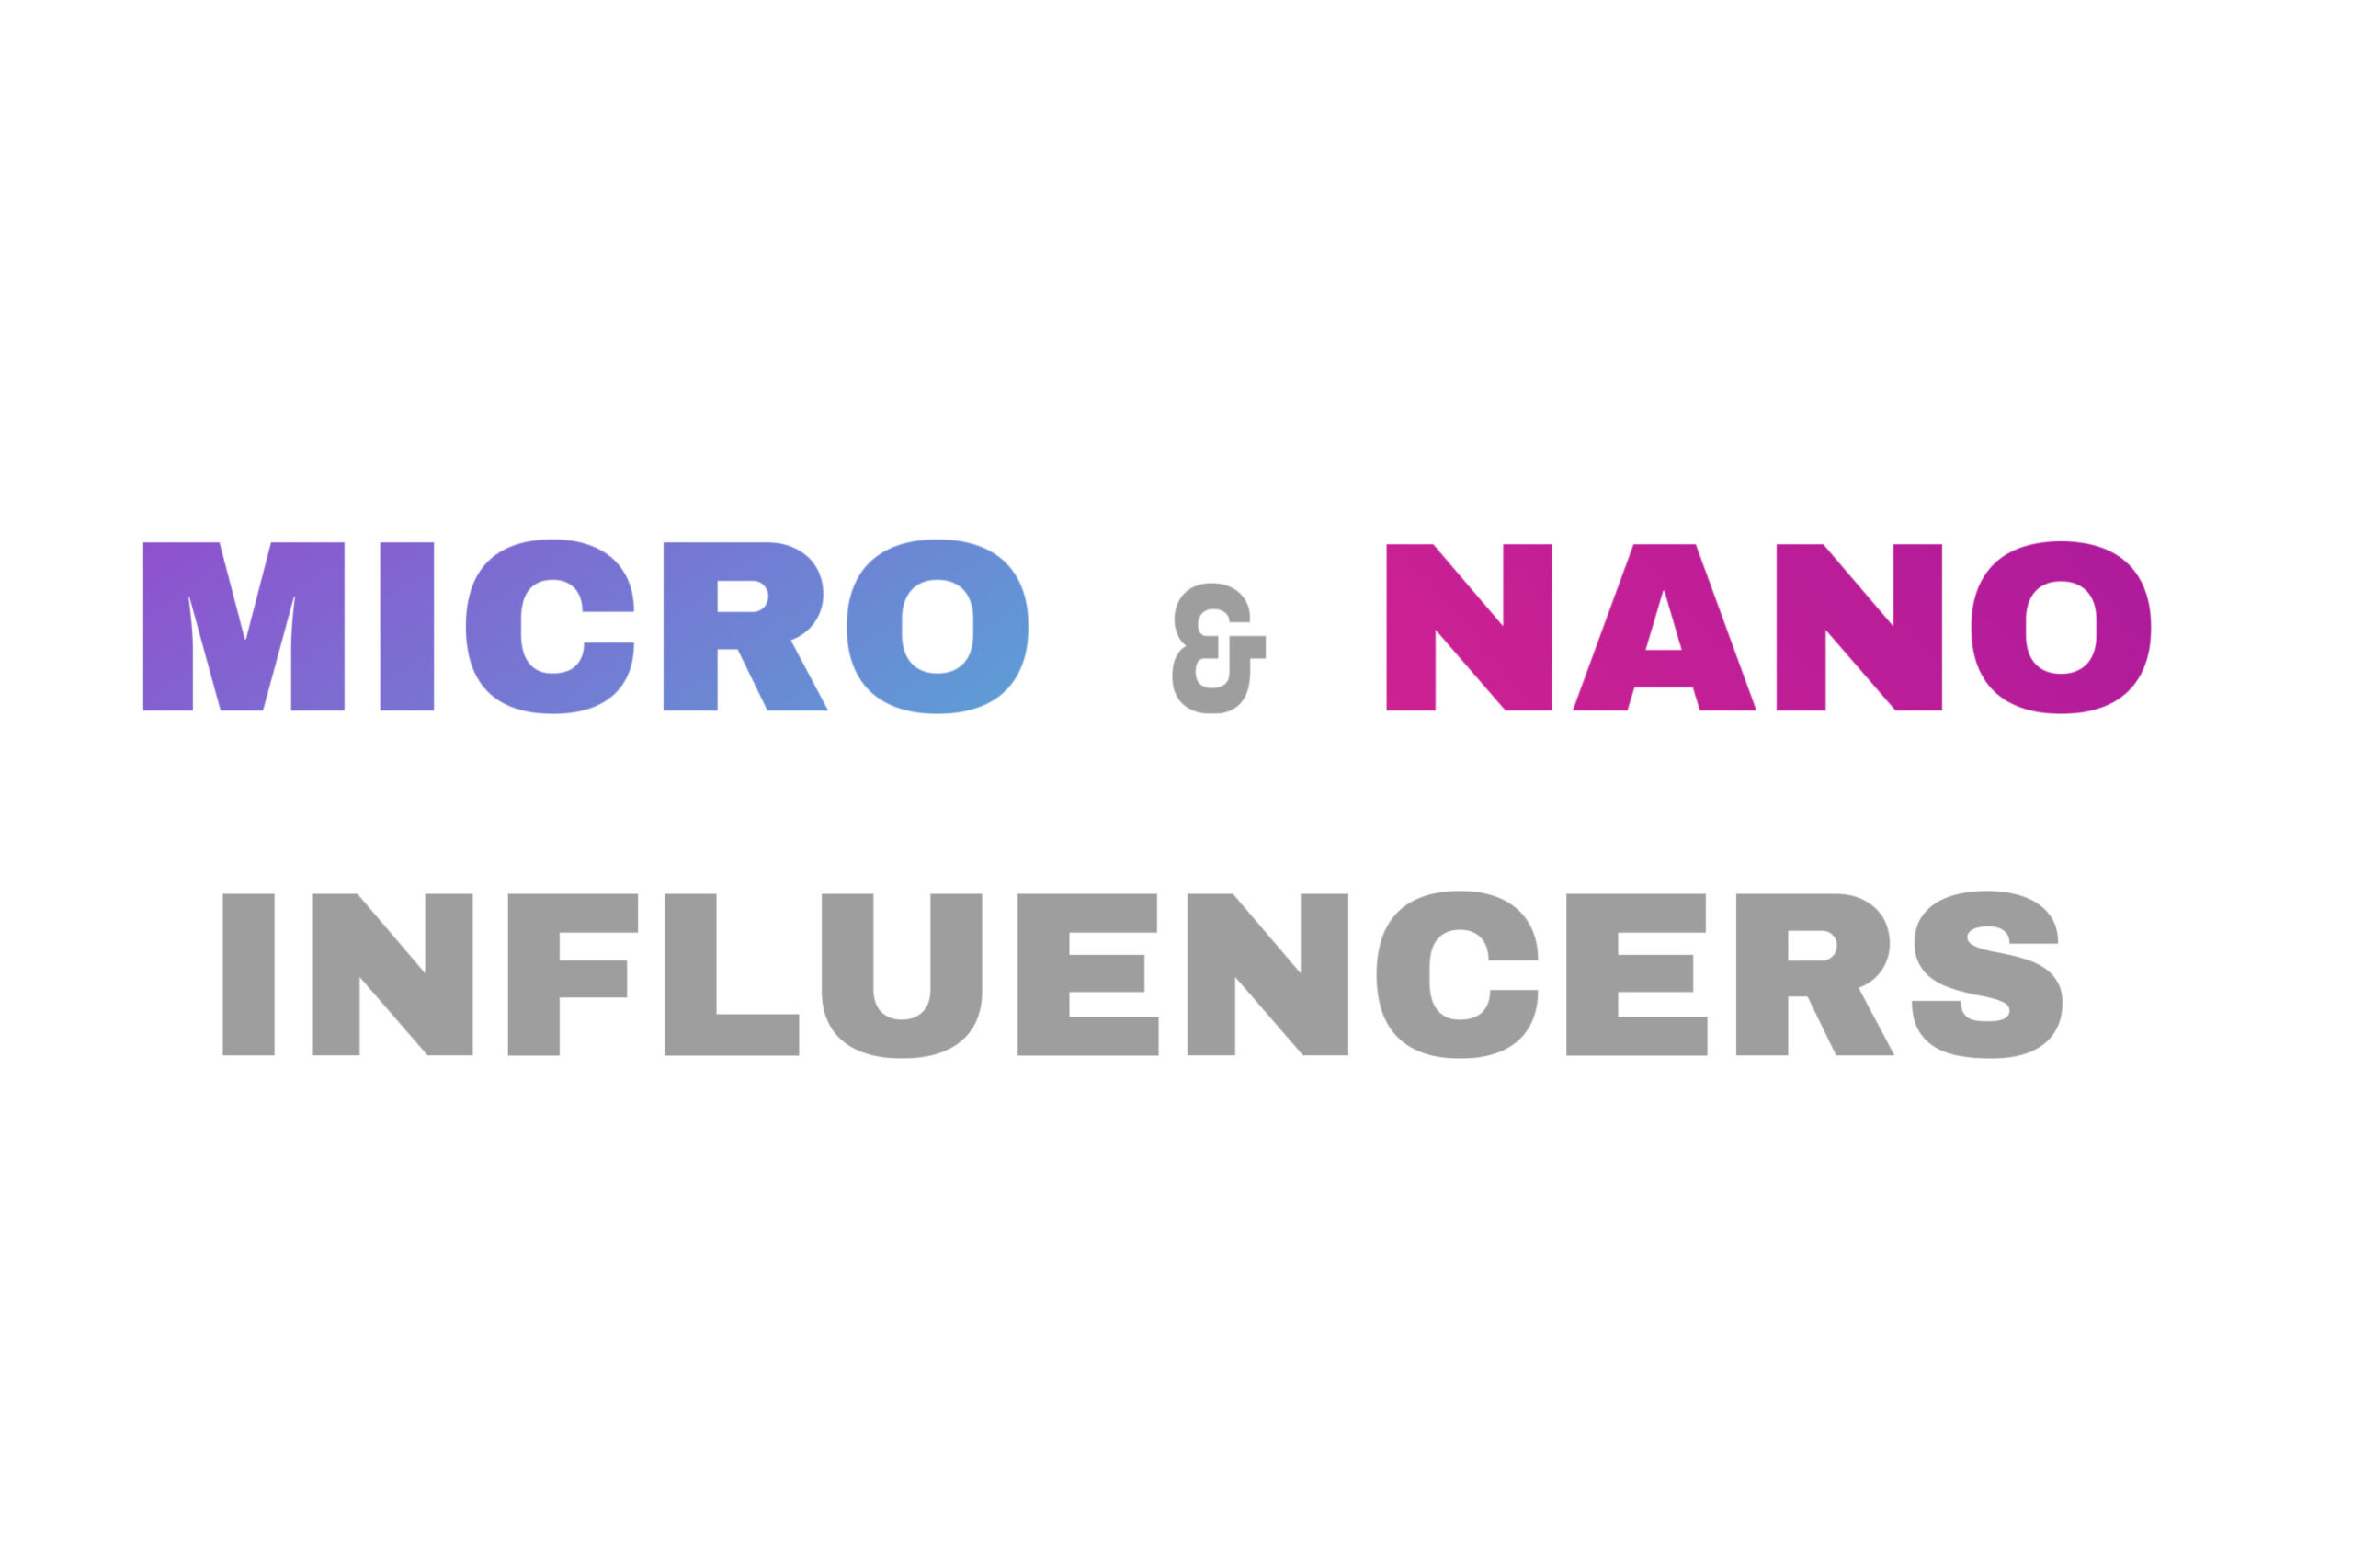 Micro & Nano Influencers https://ceastaffing.com/